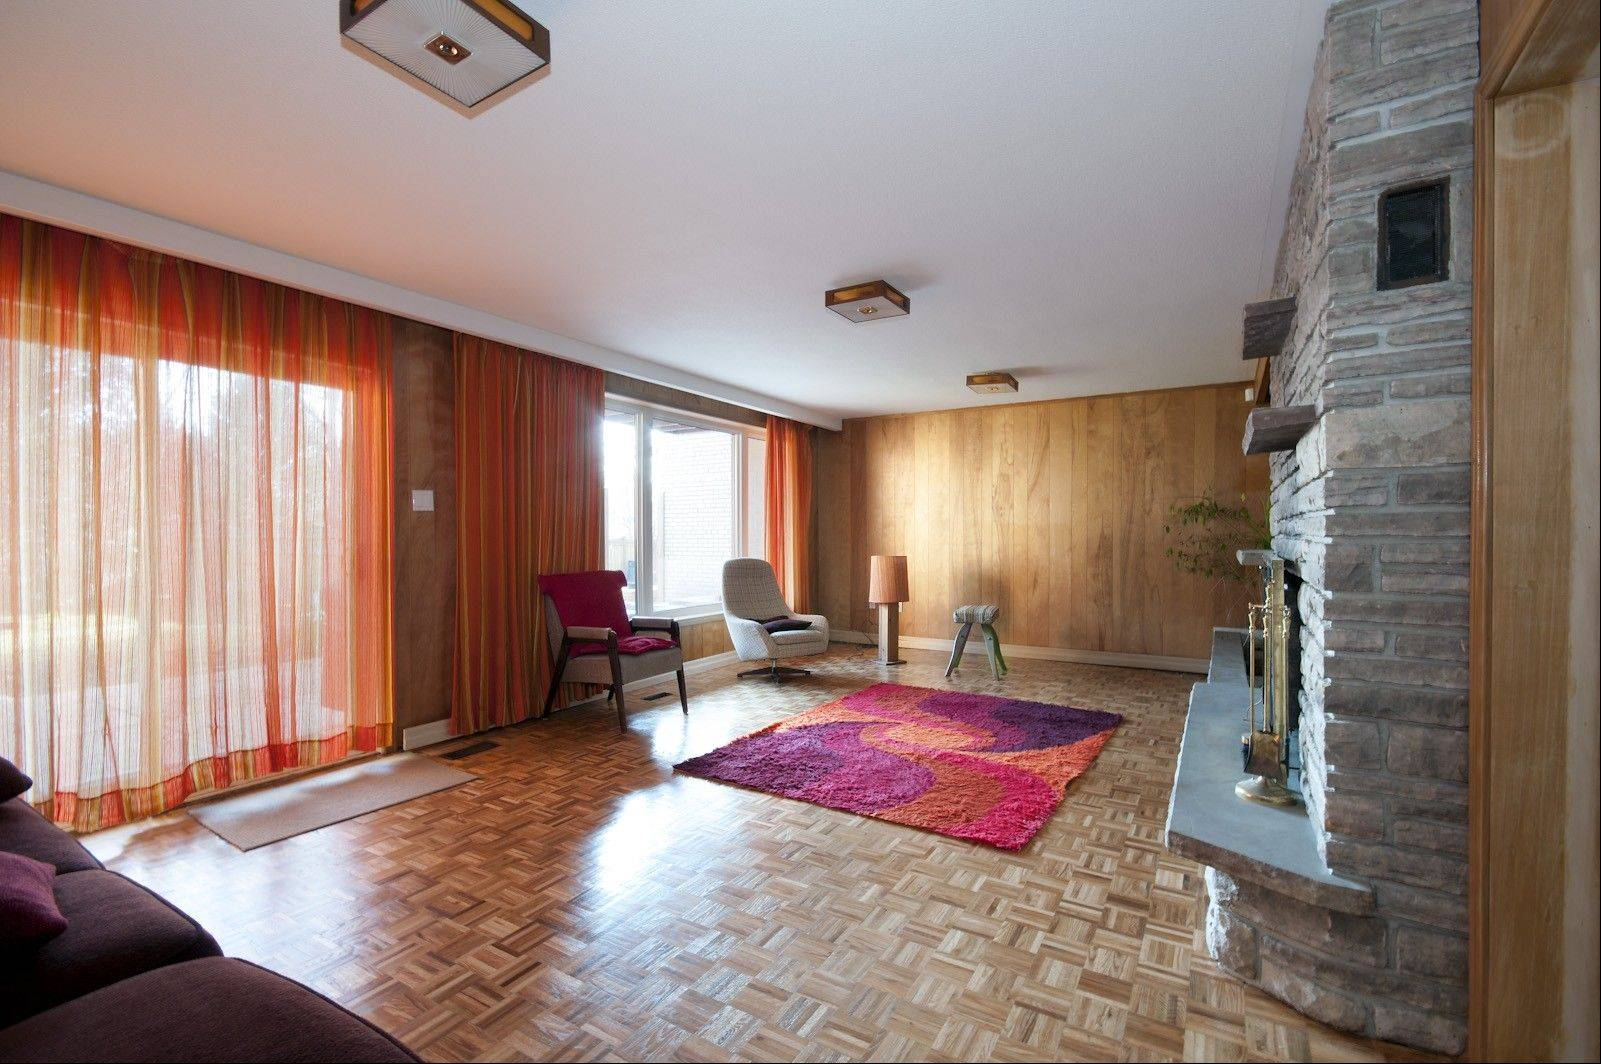 This space was a well-preserved relic of the 1960s, complete with pristine parquet flooring, popcorn ceiling, wood paneling and orange shag rugs and curtains.